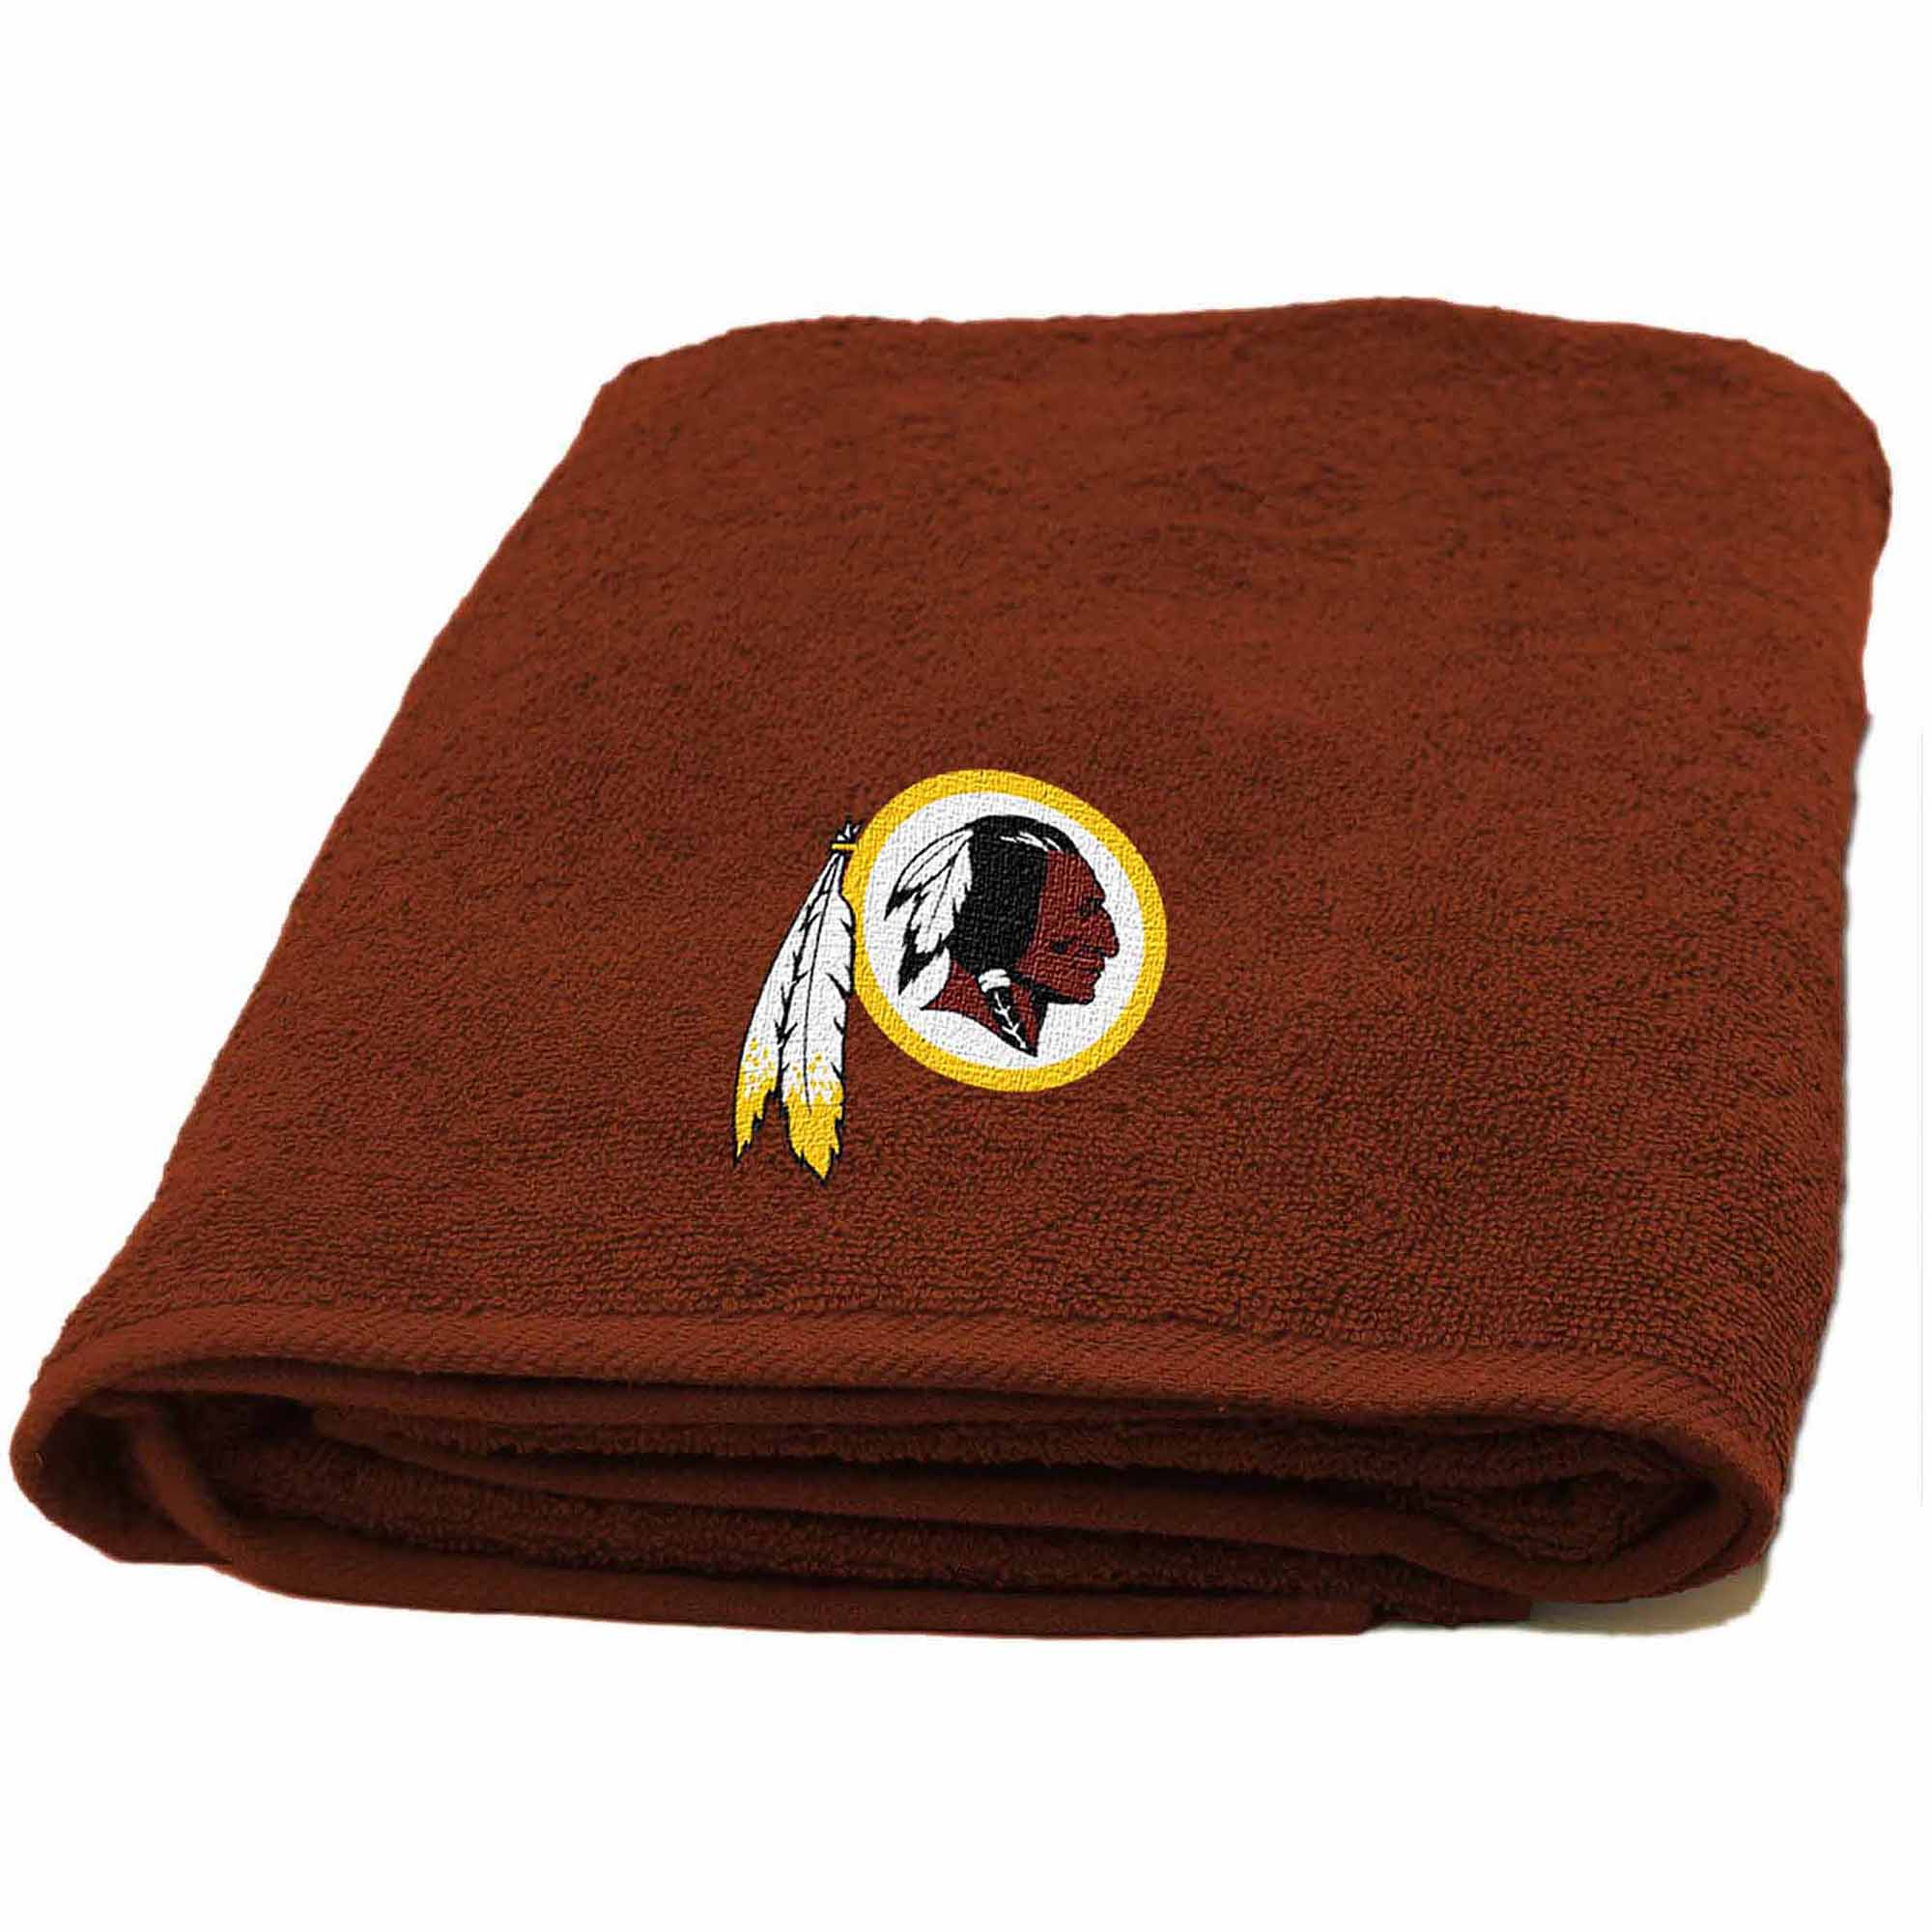 NFL Washington Redskins Decorative Bath Collection - Bath Towel